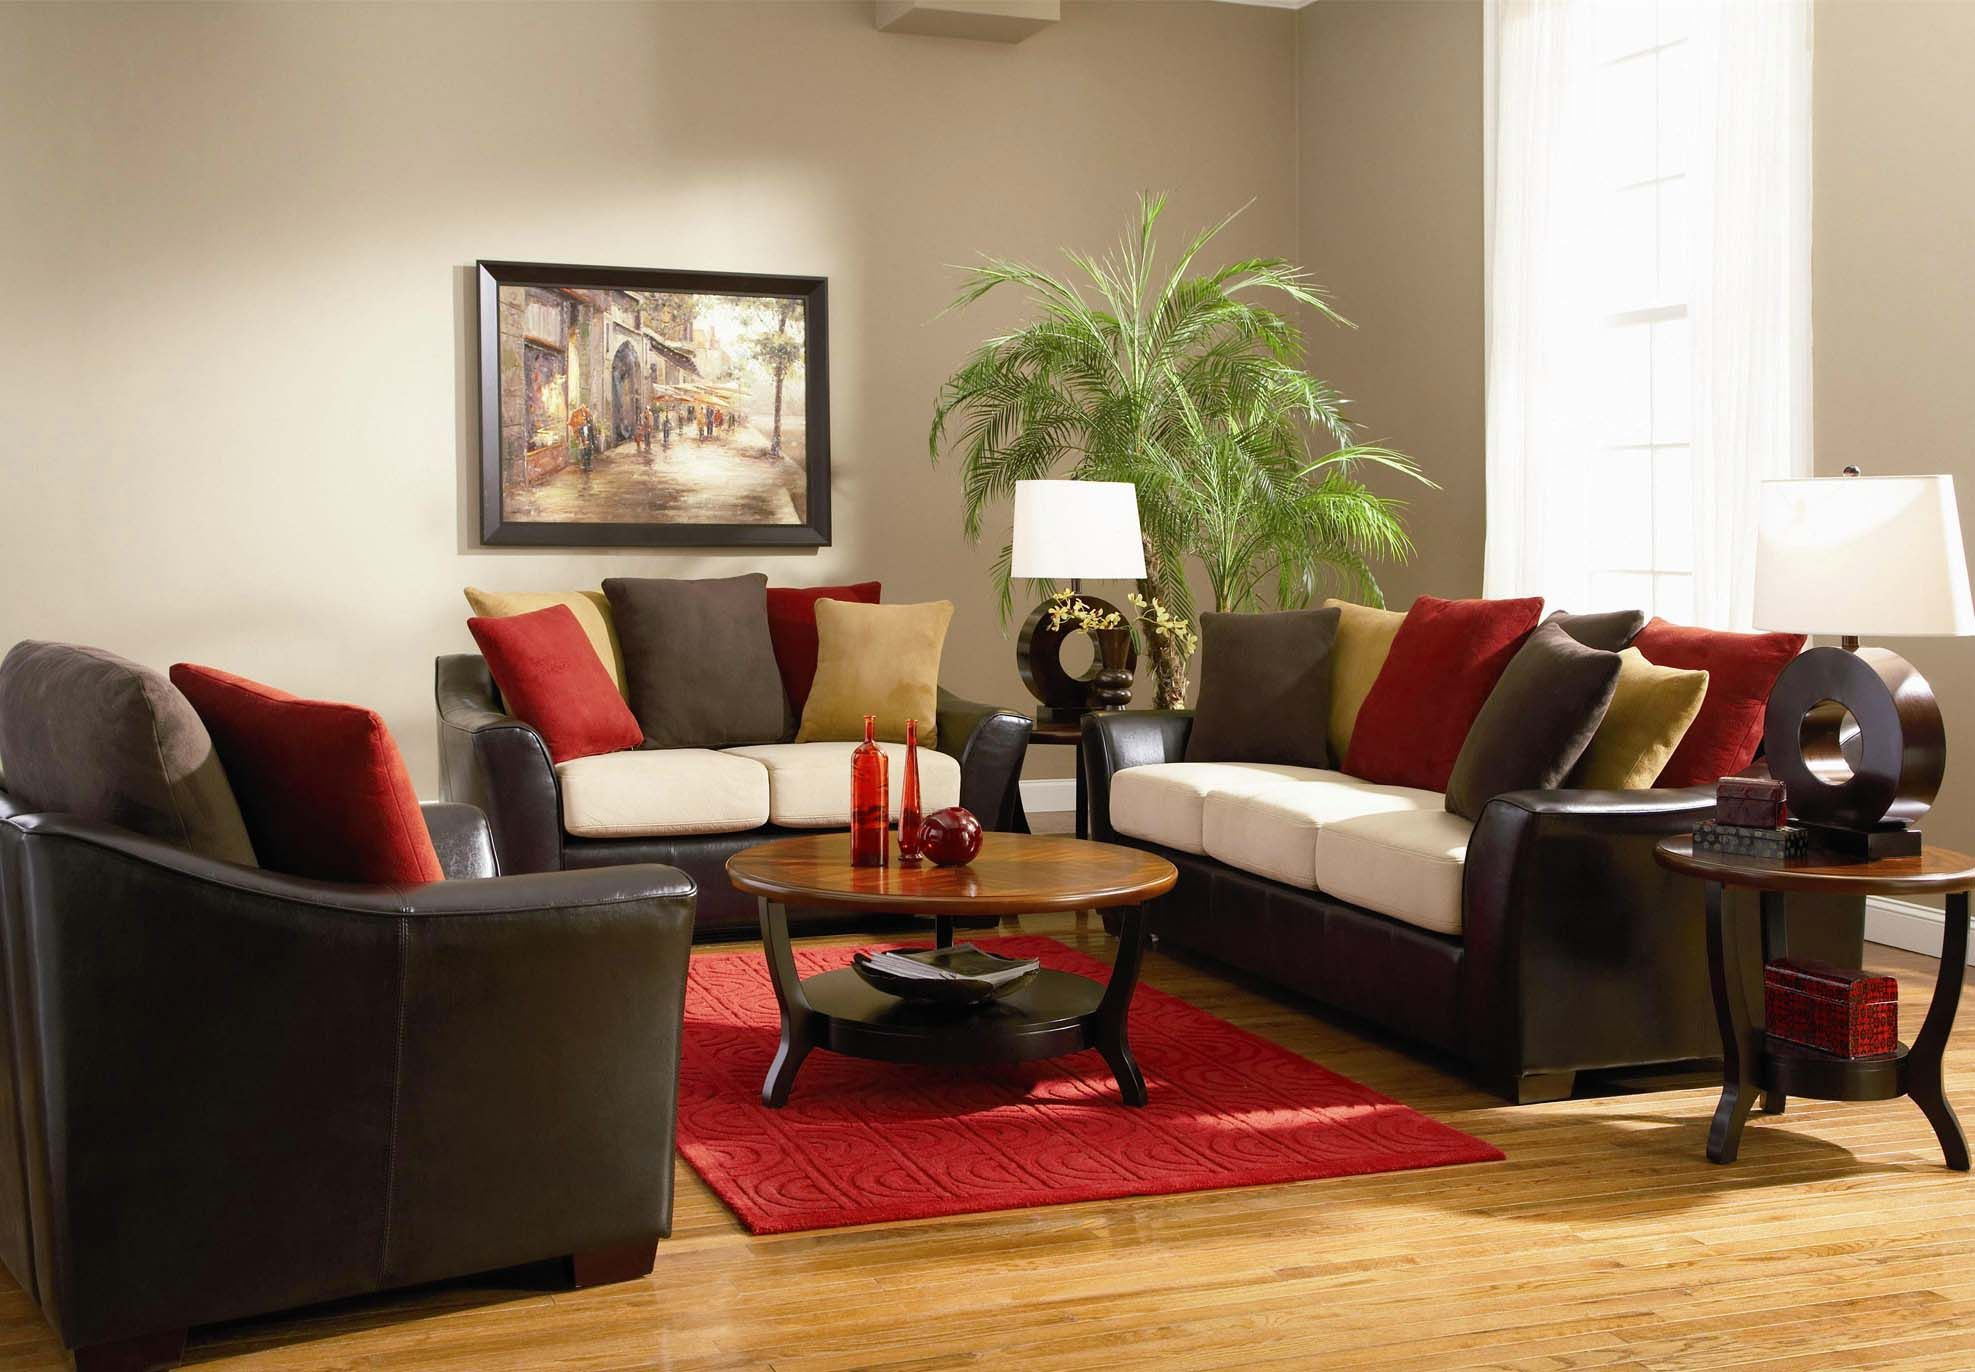 Round Dark Brown Wooden Table Beside Black Leathr Sofa And Various Color Cushions Plus Red Rug With Narrow Tables